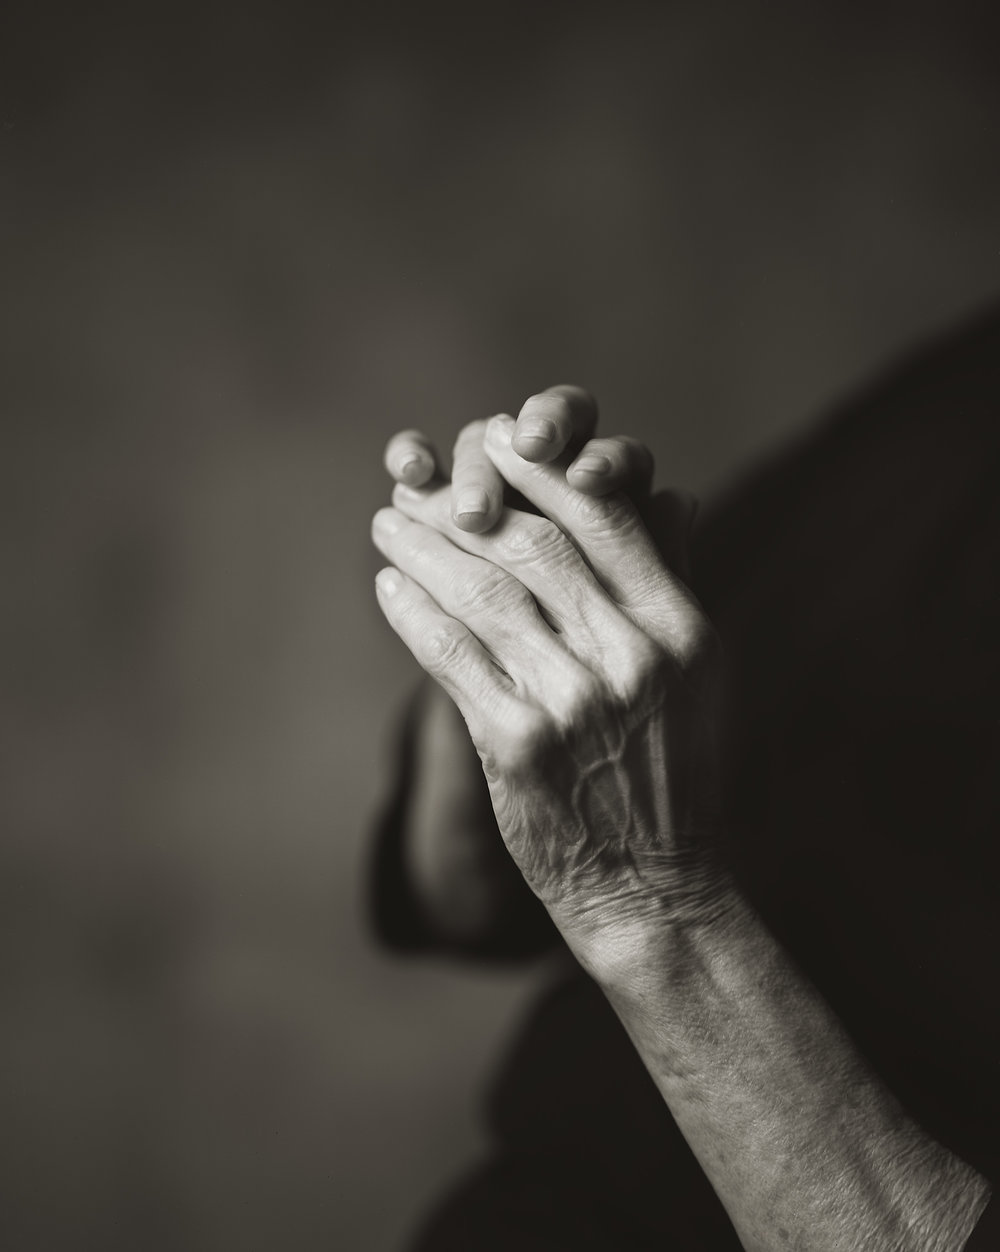 My Mother's Hands with Arthritis, 2015